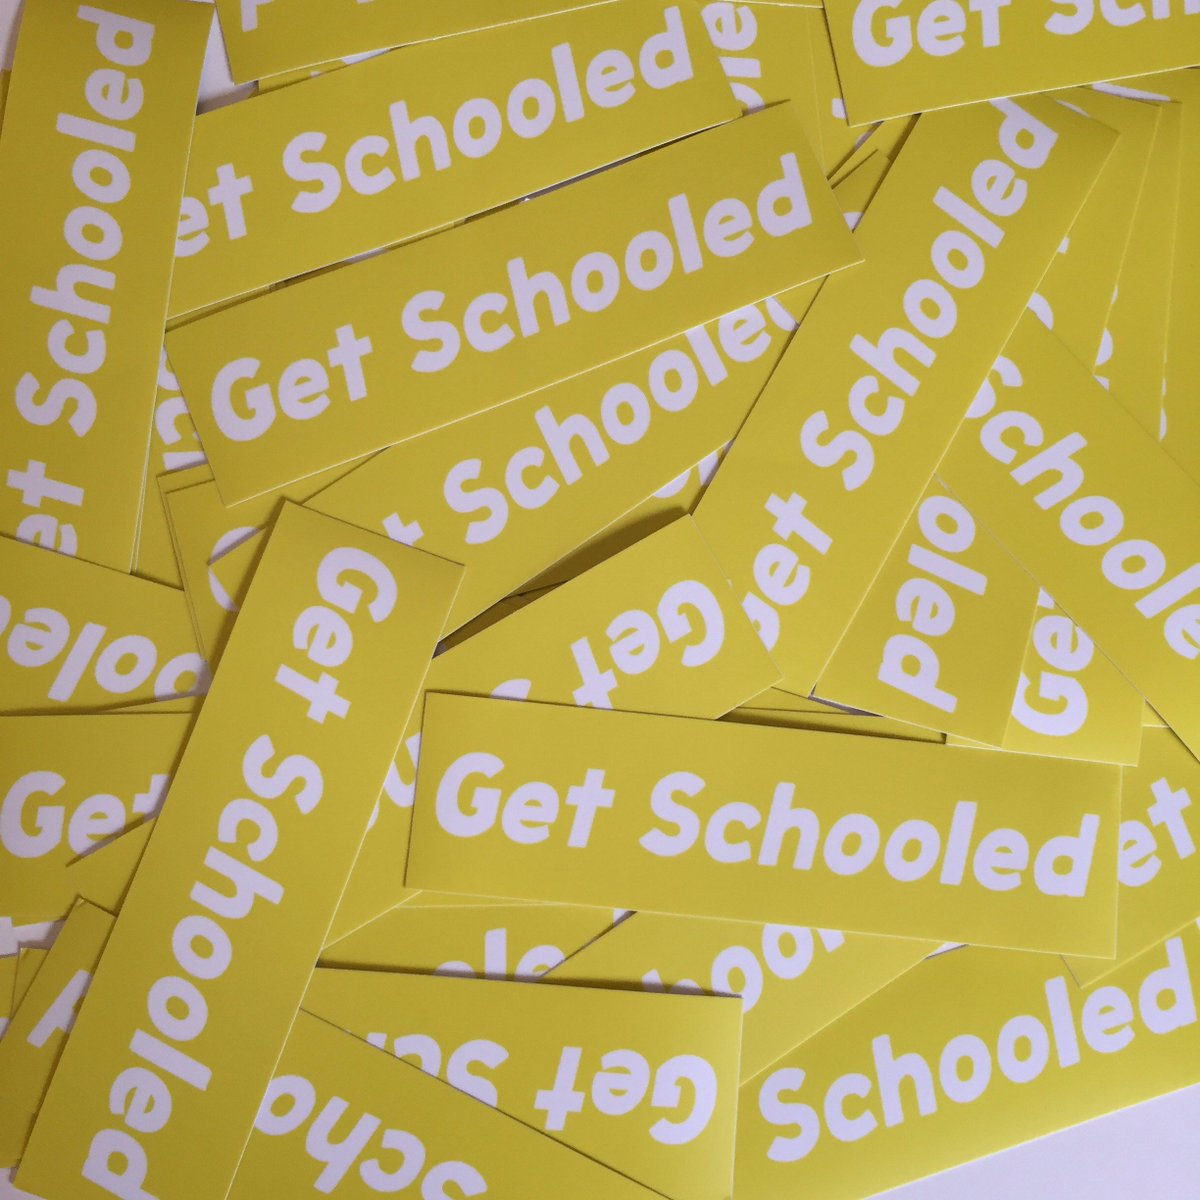 New Get Schooled Sticker GIVEAWAY